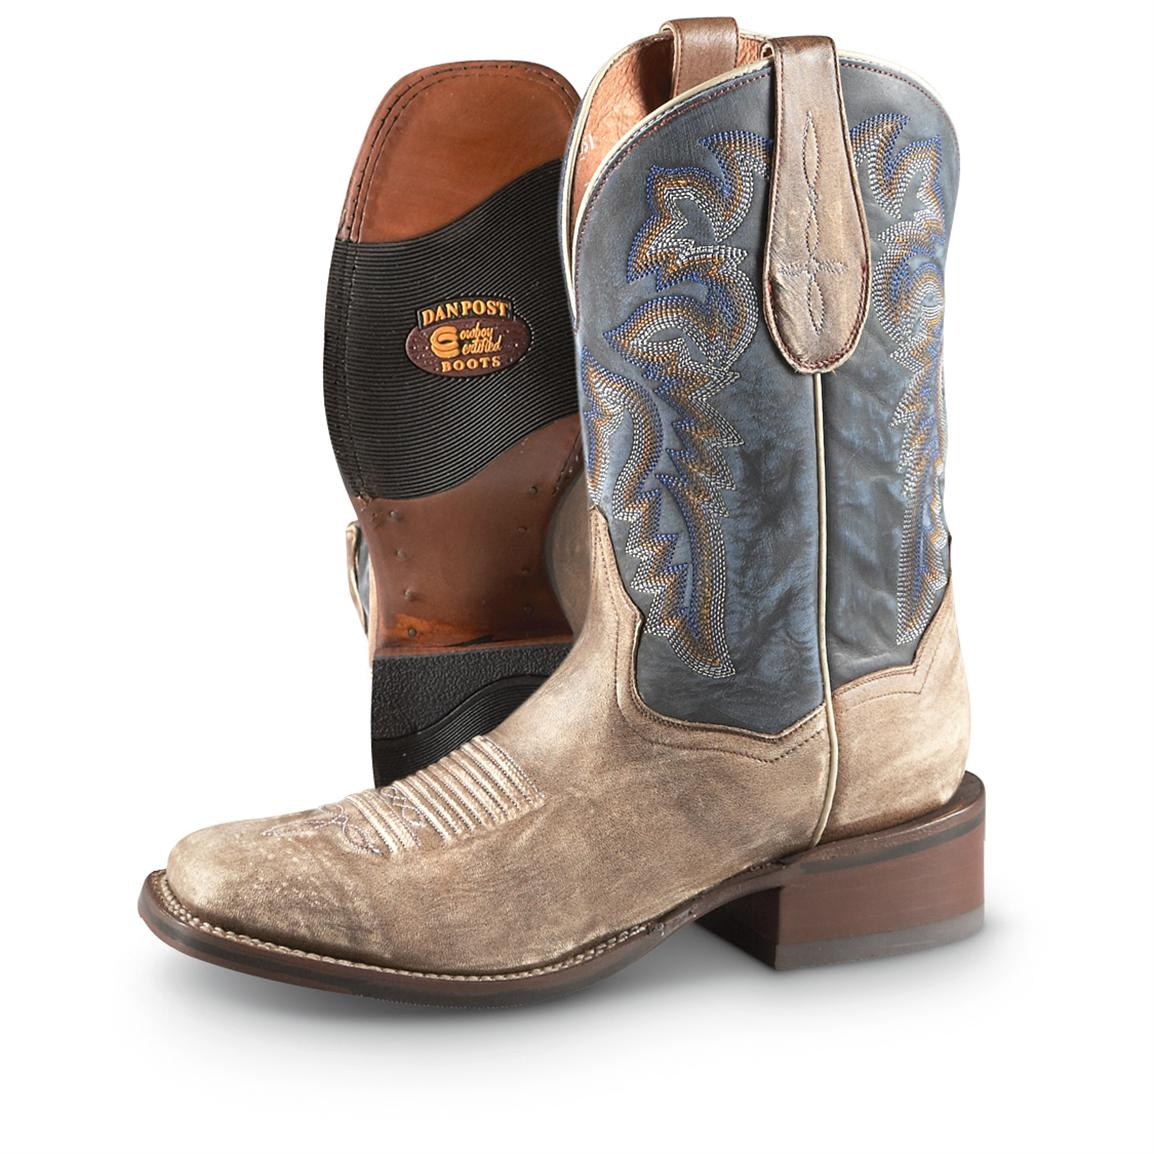 Dan Post Cowboy Boots xl6fCdr9